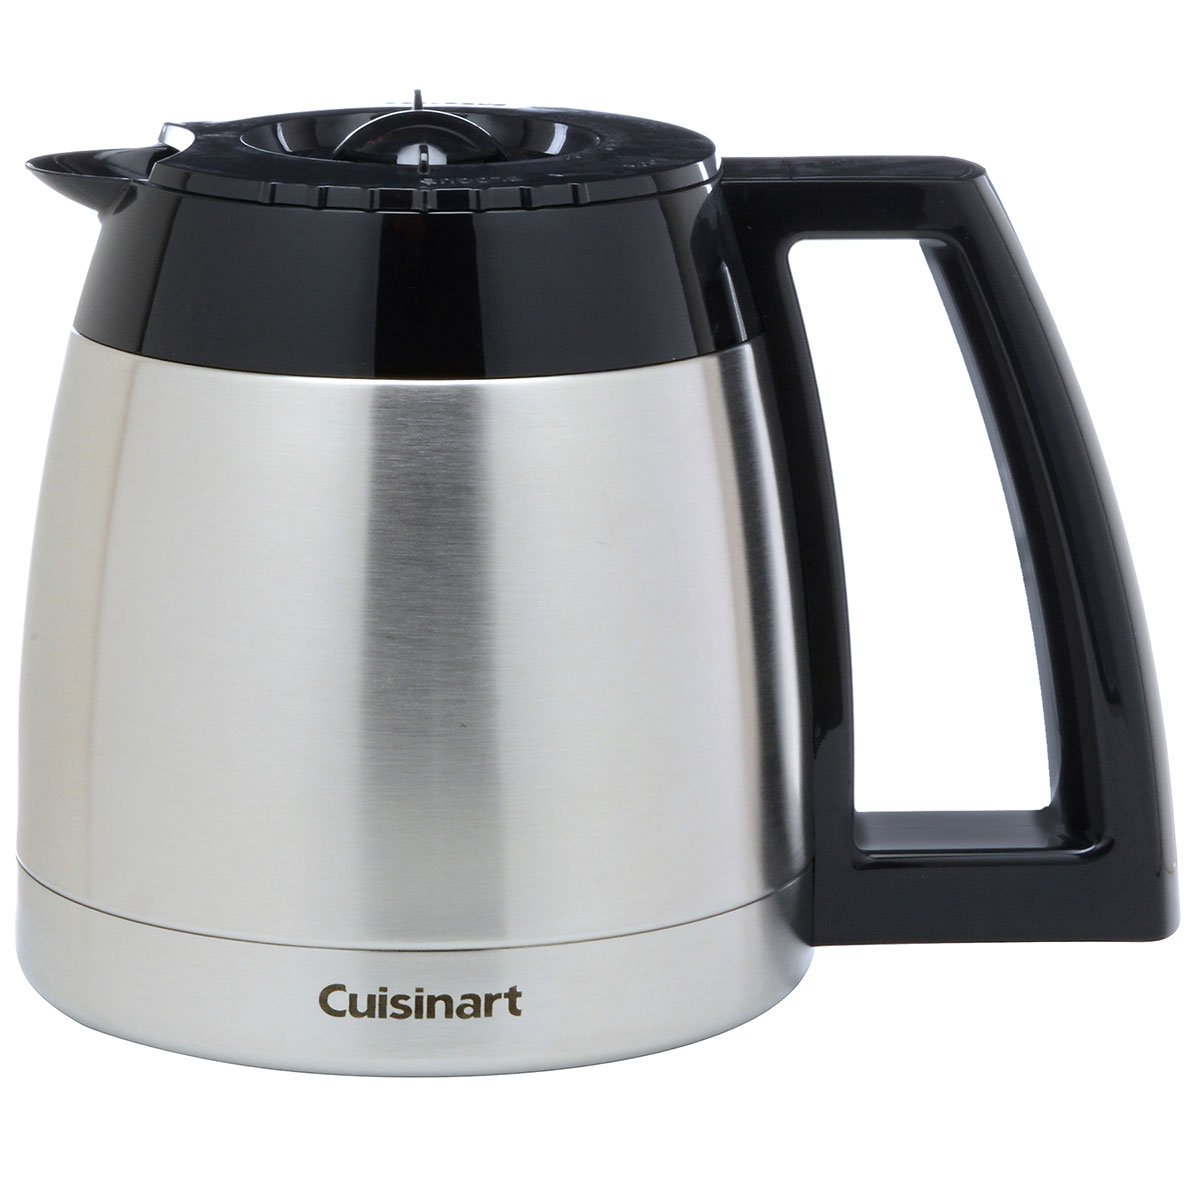 Cuisinart DCC-1150BK 10-Cup Thermal Coffeemaker Black w/ Additional Carafe by WhoIsCamera (Image #3)